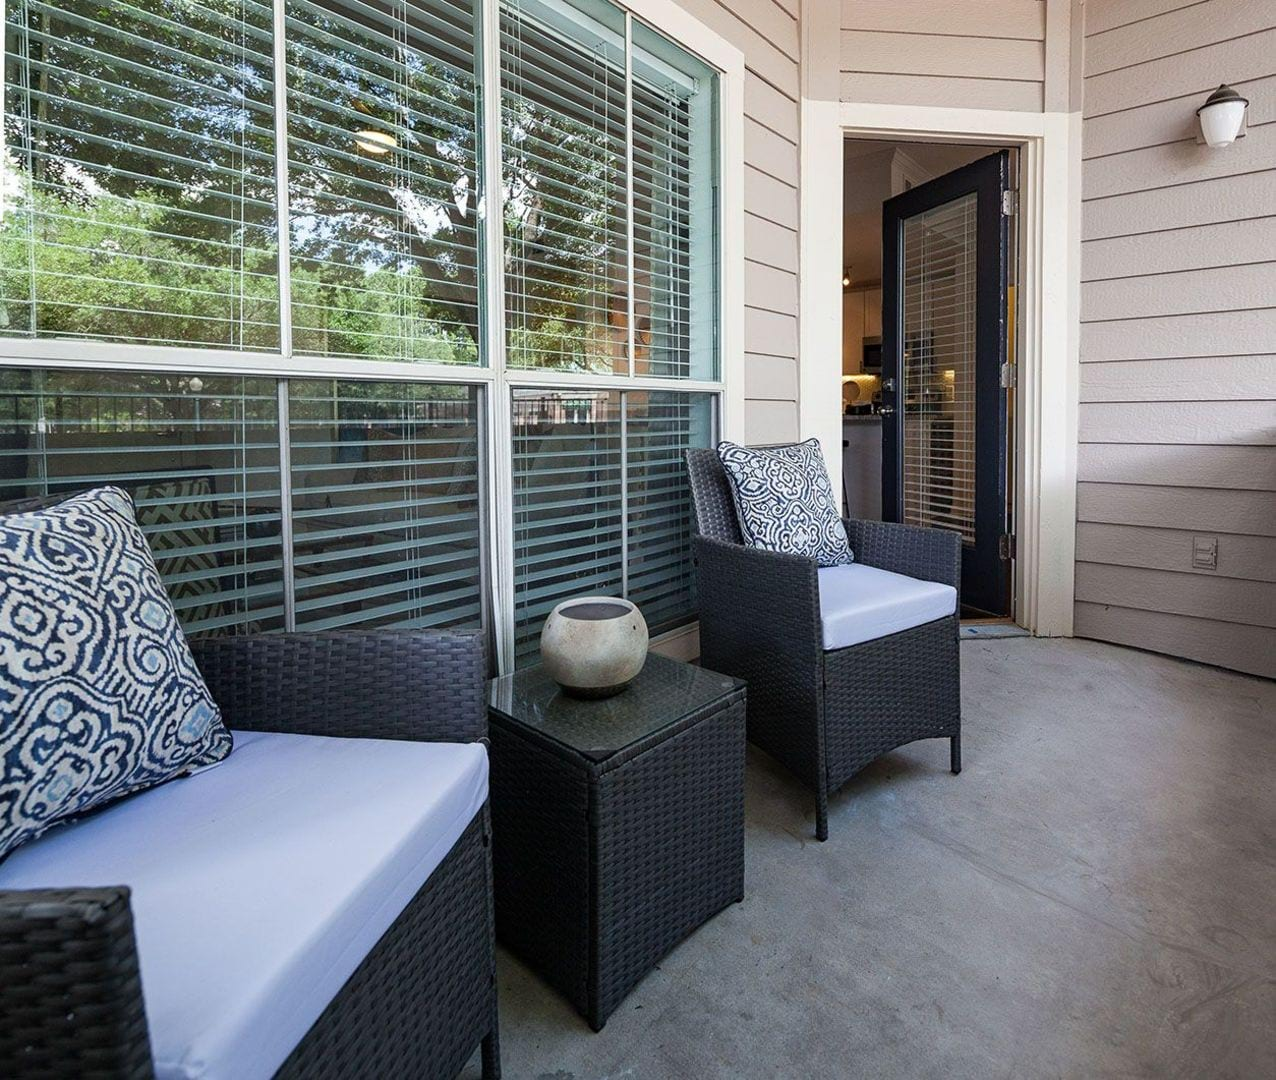 Town Center Apartments: Kingwood, TX Apartments For Rent